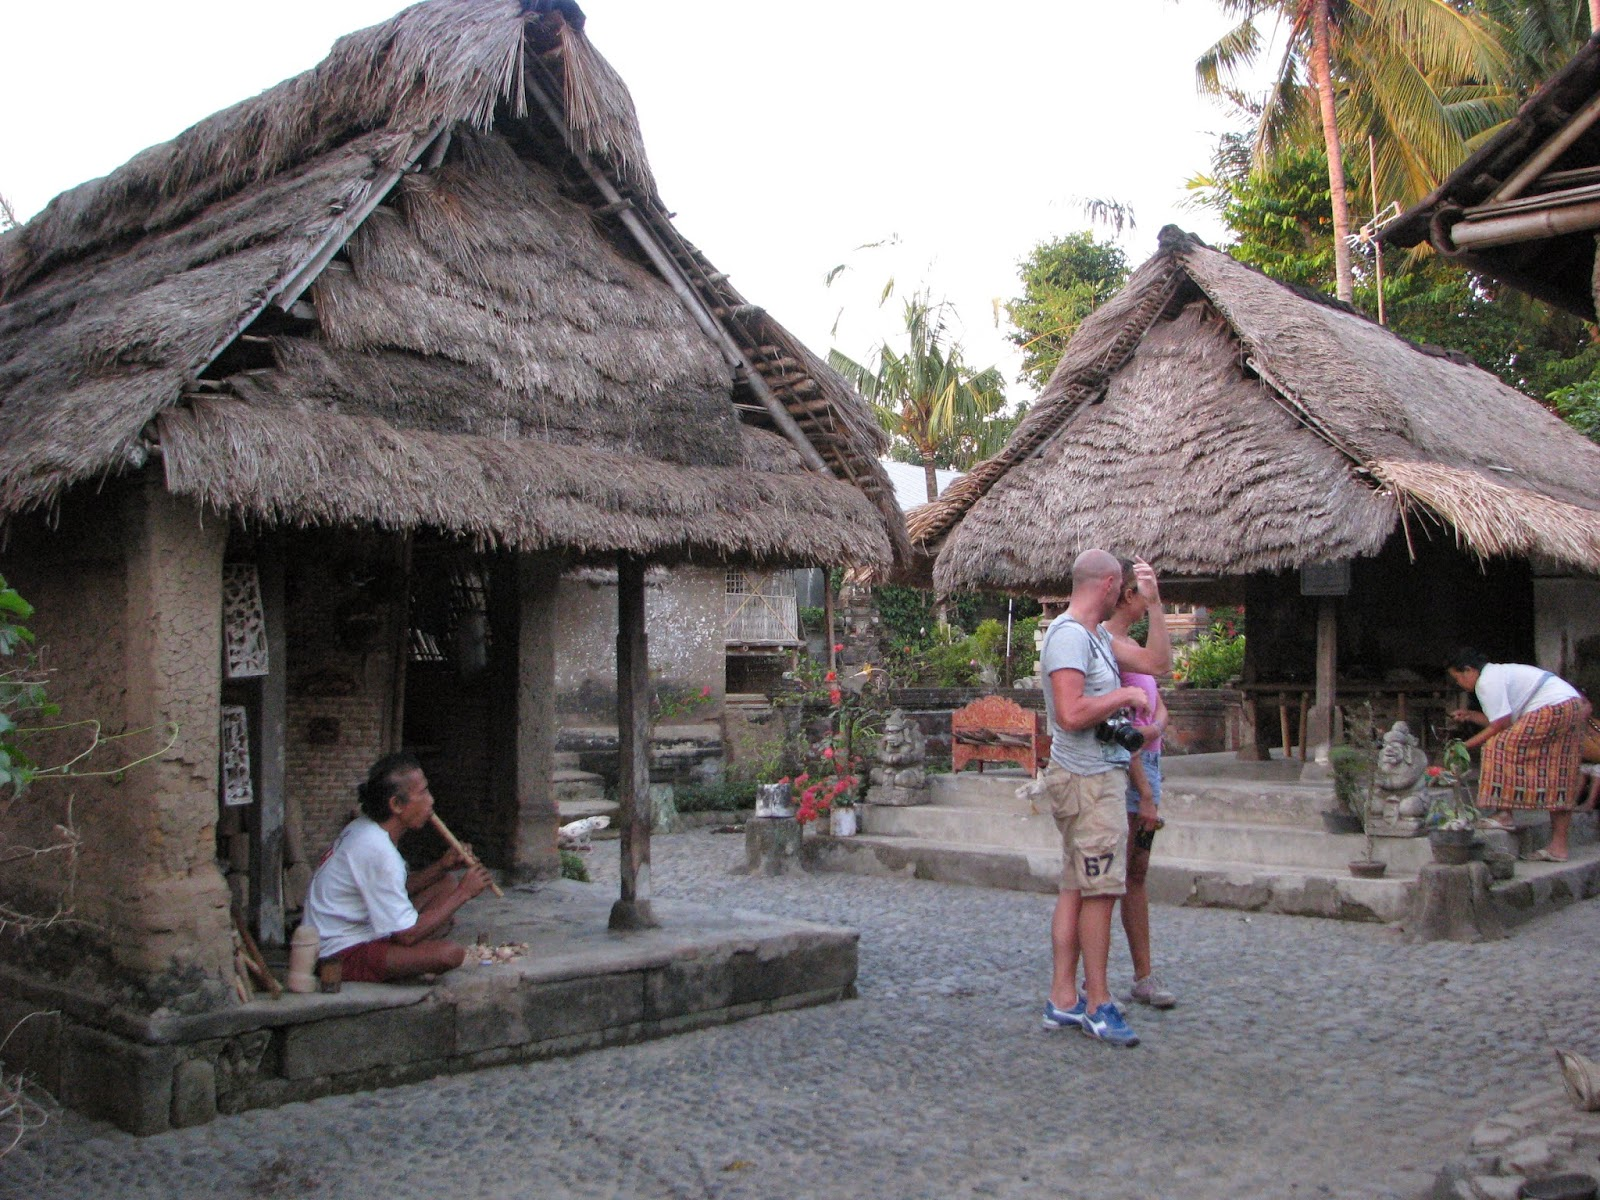 Balinese house images